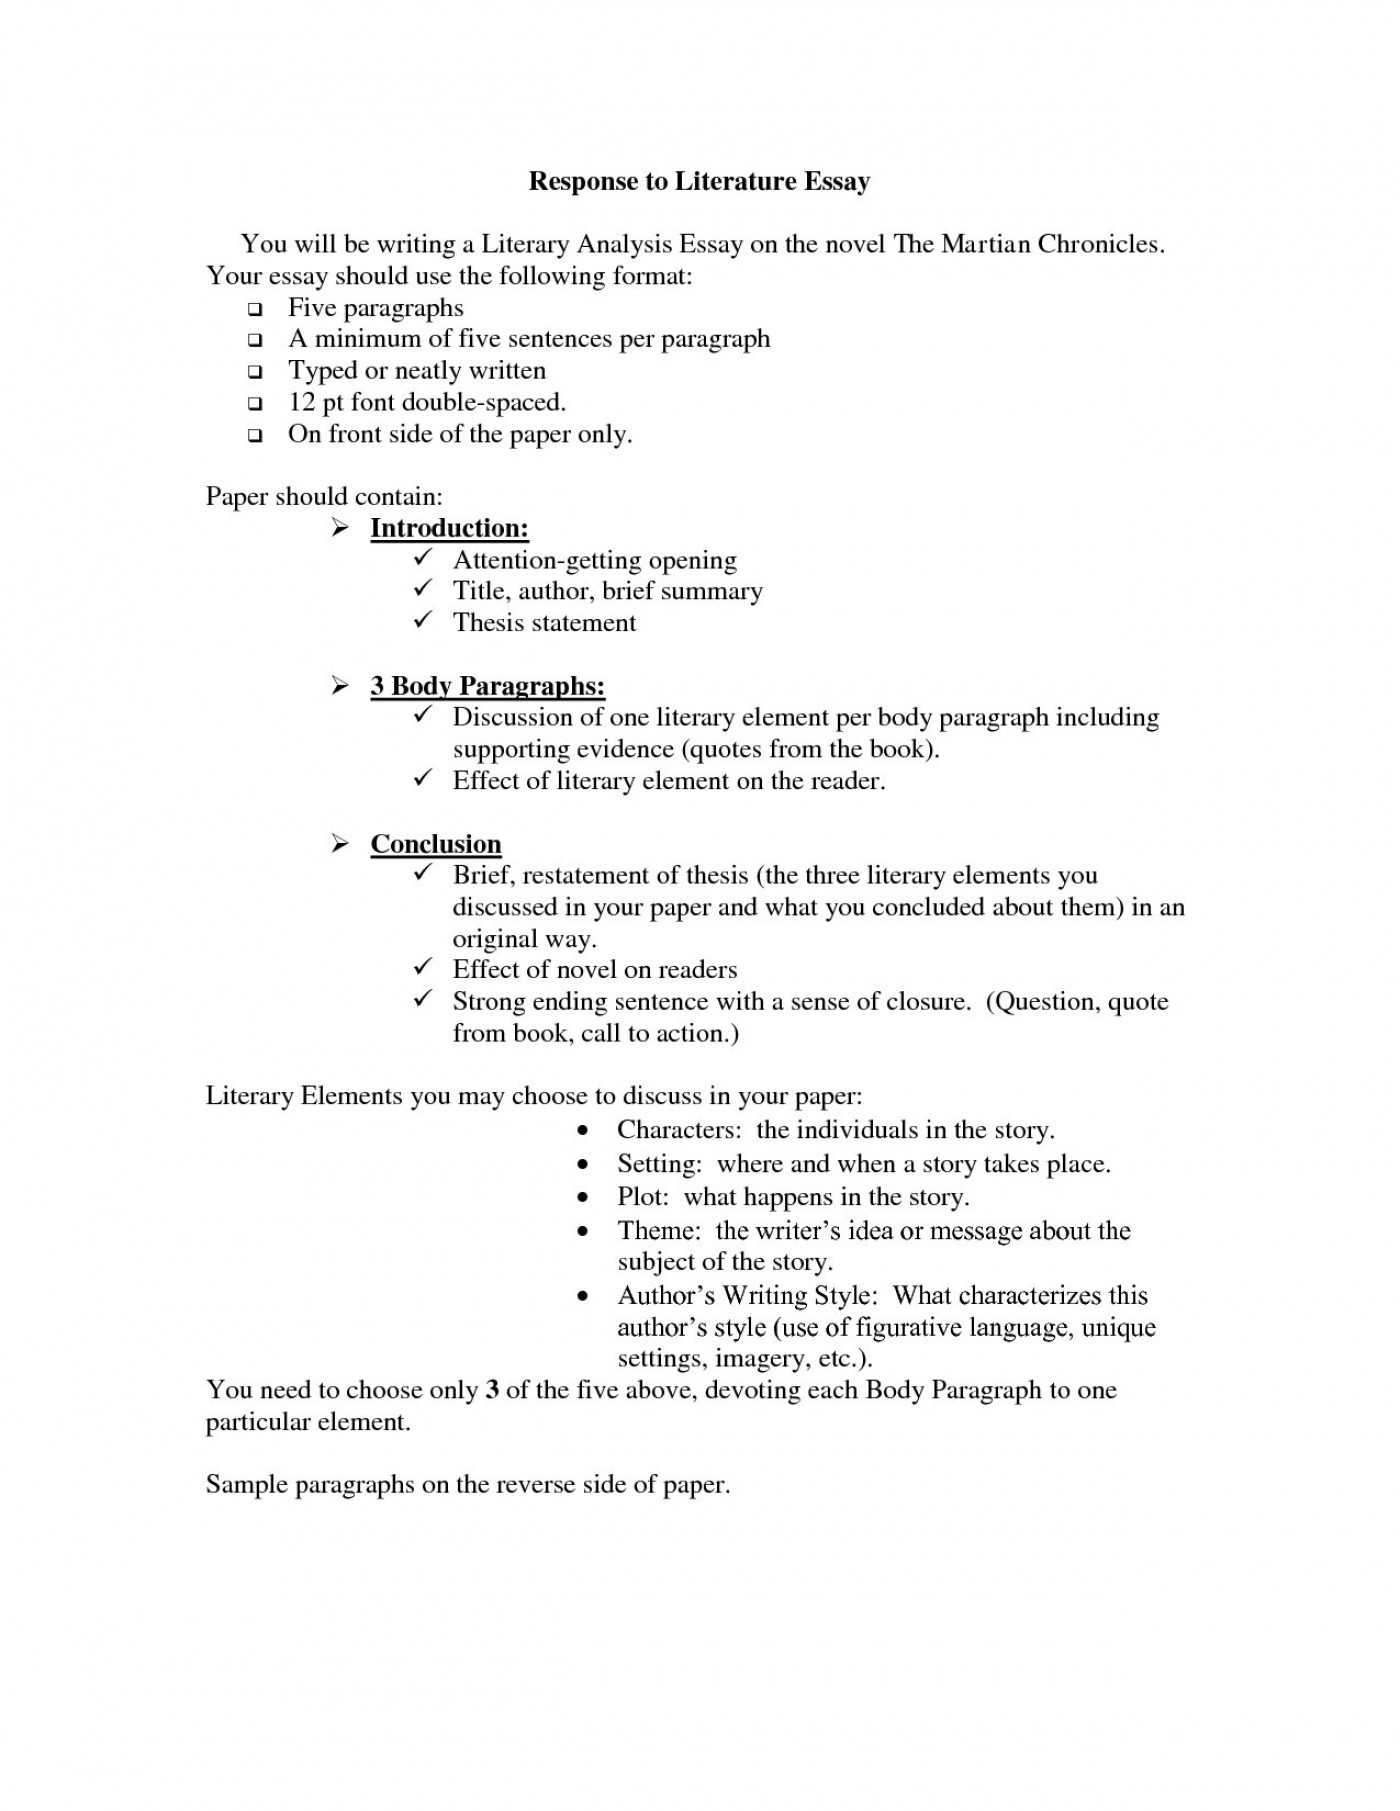 006 Essay Example Brilliant Ideas Of Resume Cv Cover Letter Poetry Reflection Paper Poem Parison Creative Explication Formidable Trifles Questions Feminism Topics 1400